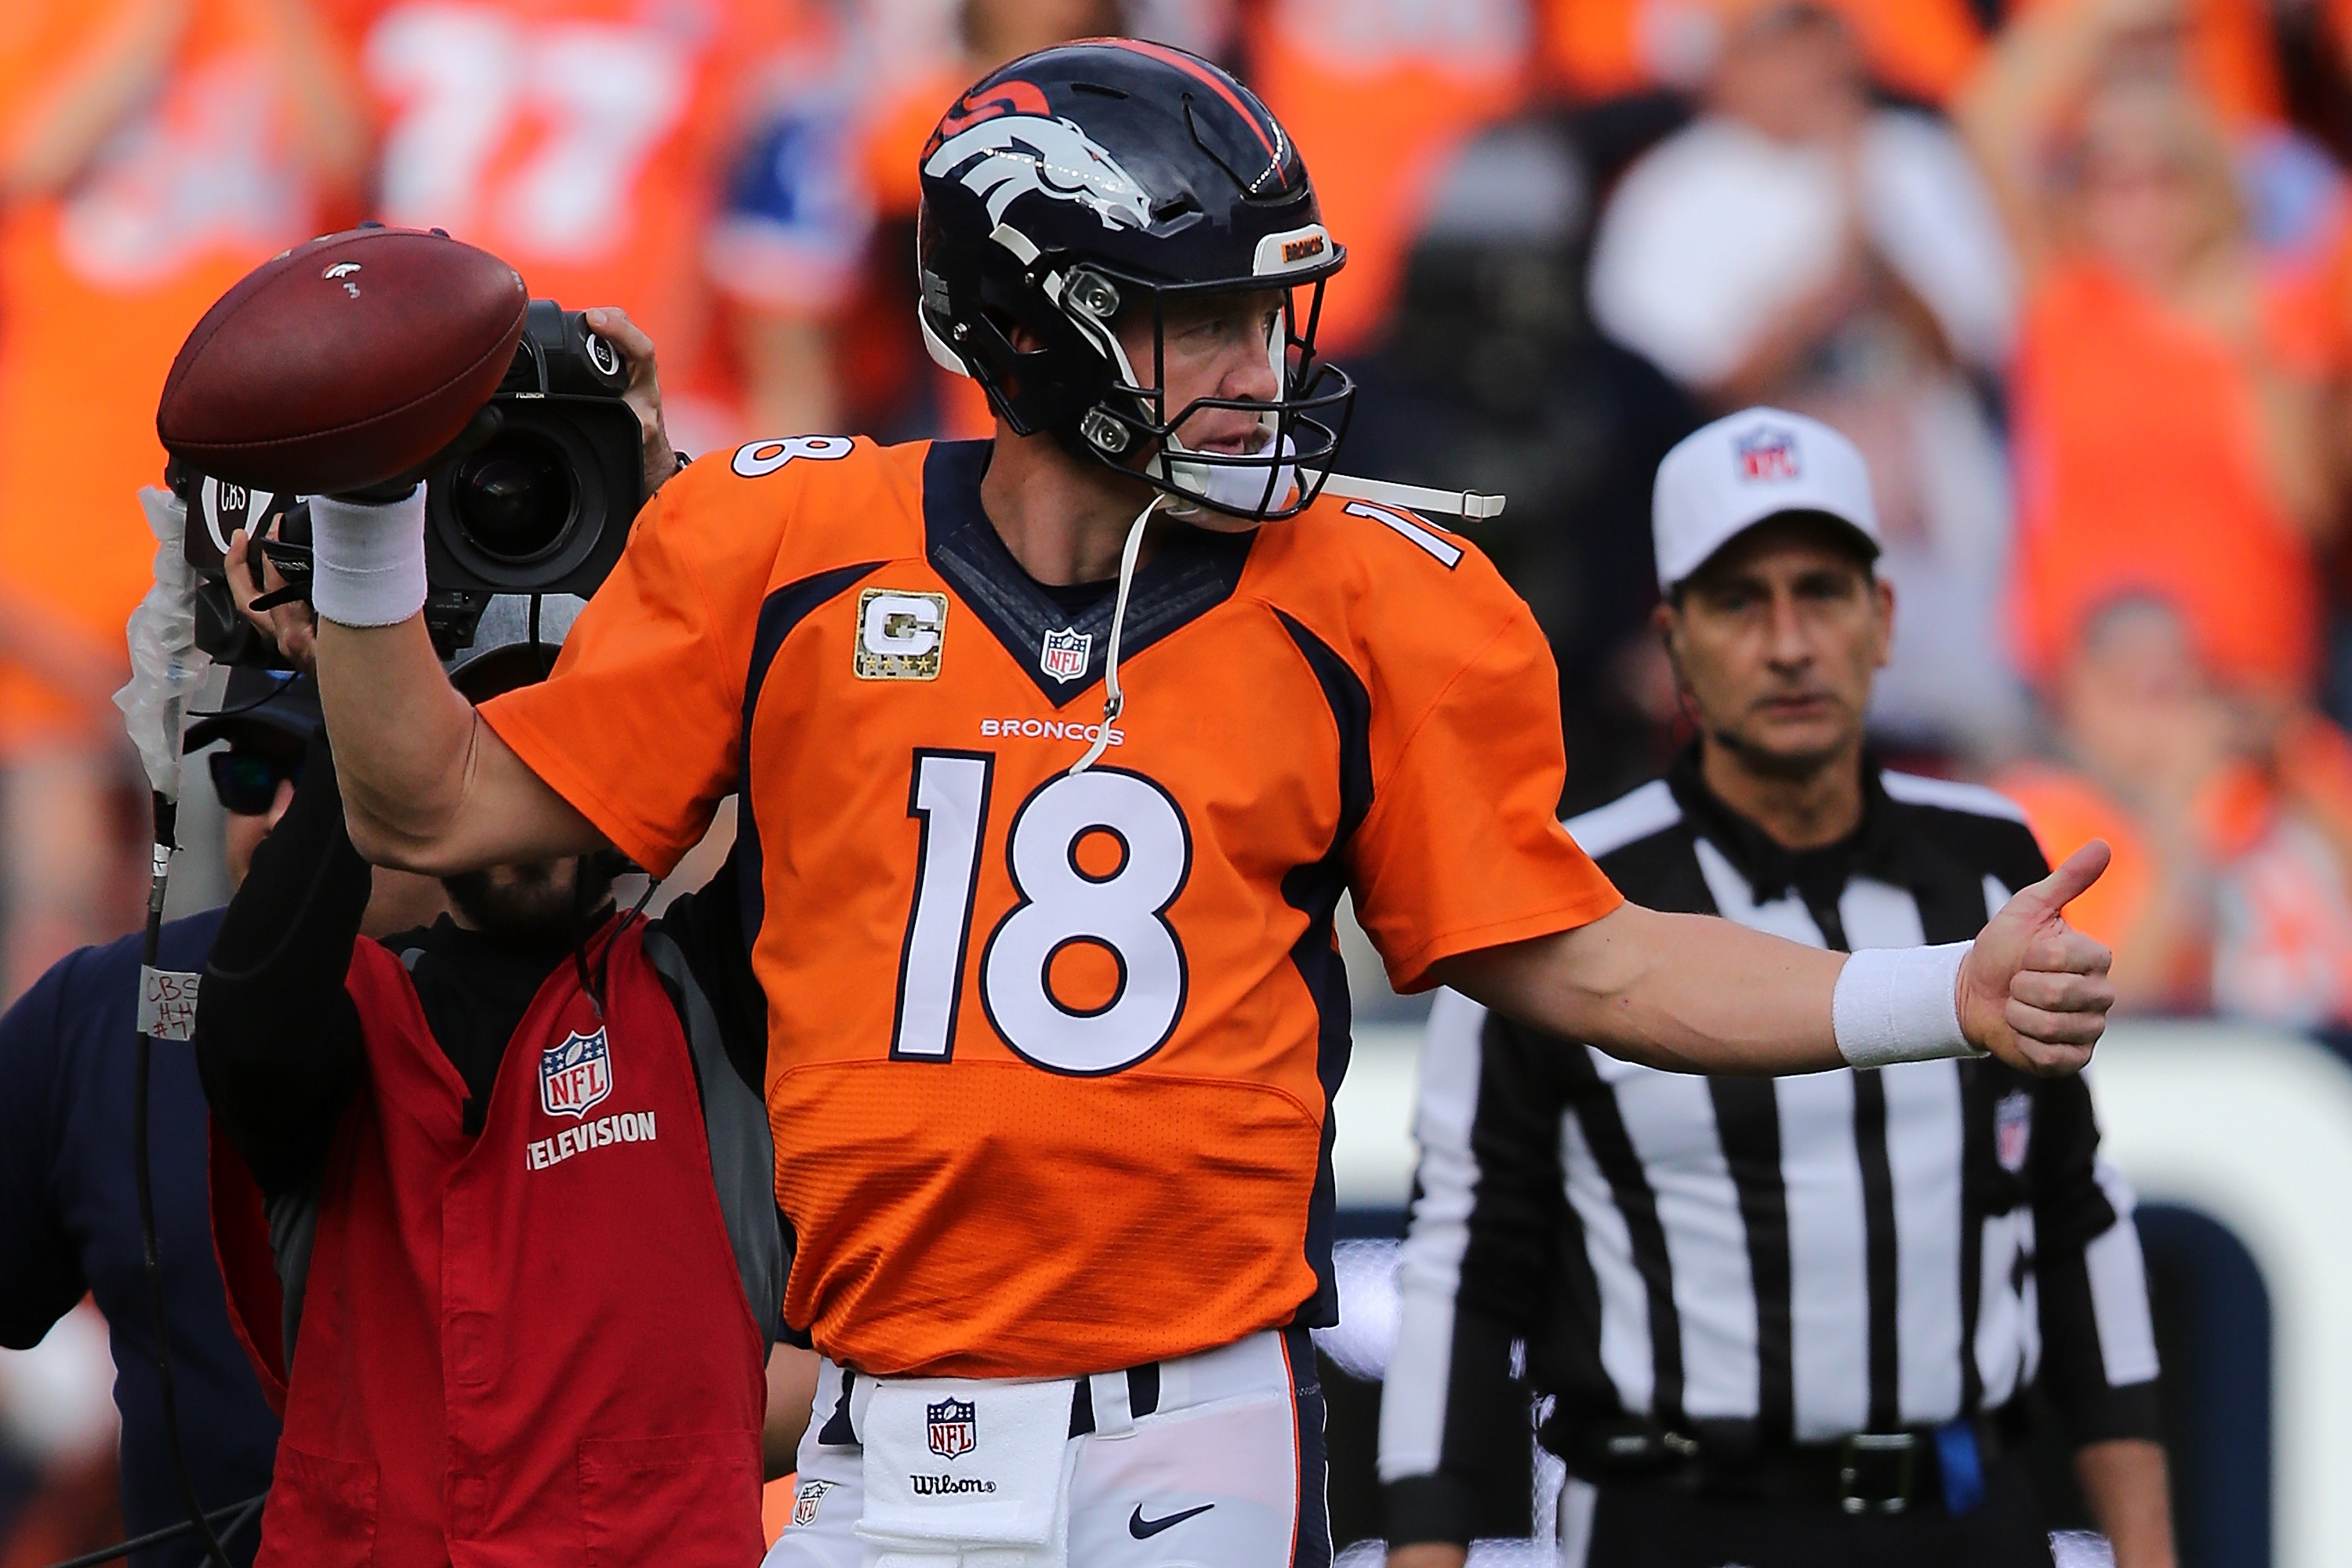 DENVER, CO - NOVEMBER 15: Peyton Manning #18 of the Denver Broncos reacts as he sets the NFL career passing yards record with a four yard completion to Ronnie Hillman #23 of the Denver Broncos against the Kansas City Chiefs in the first quarter at Sports Authority Field at Mile High on November 15, 2015 in Denver, Colorado. Mannning passes Bret Farve who previously heldÊthe record at 71, 838 yards. (Photo by Doug Pensinger/Getty Images)